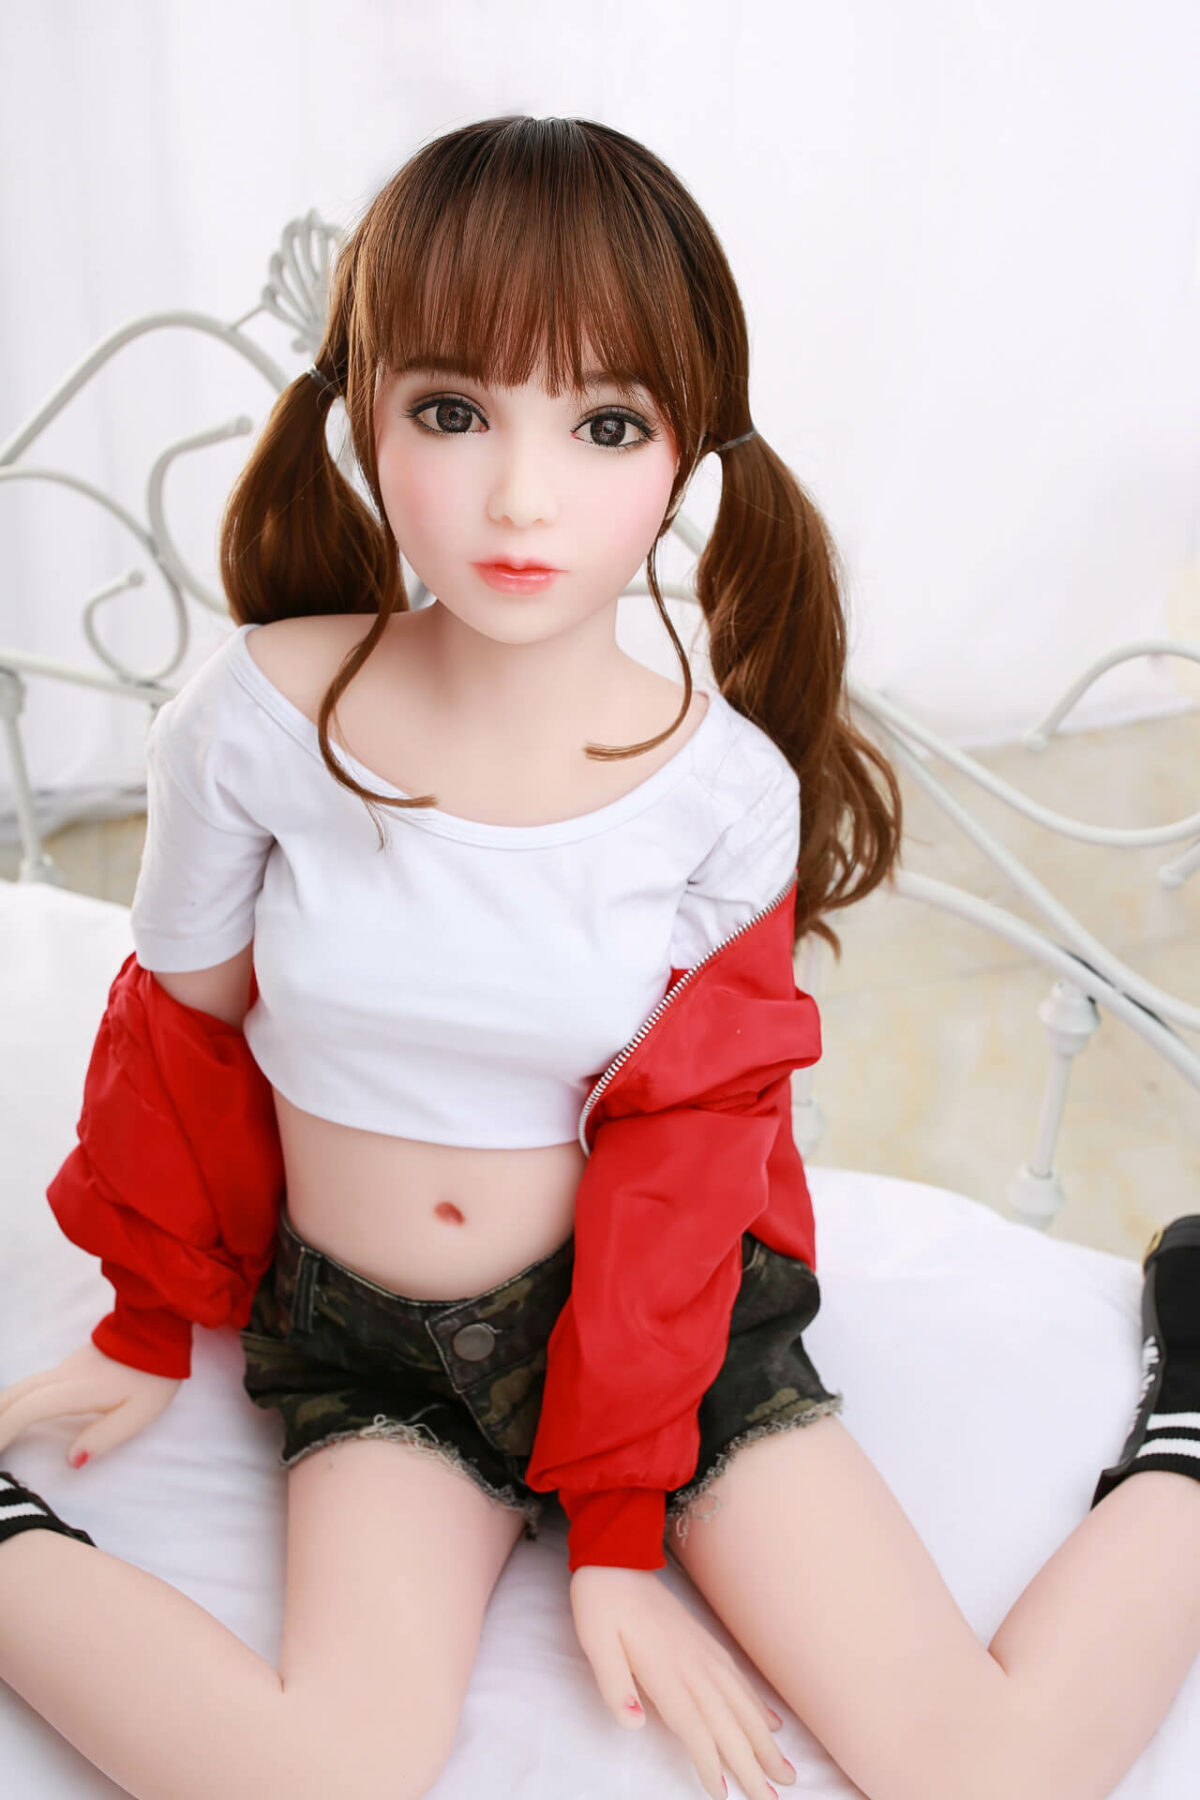 125CM Younger Sex Doll - Ashley